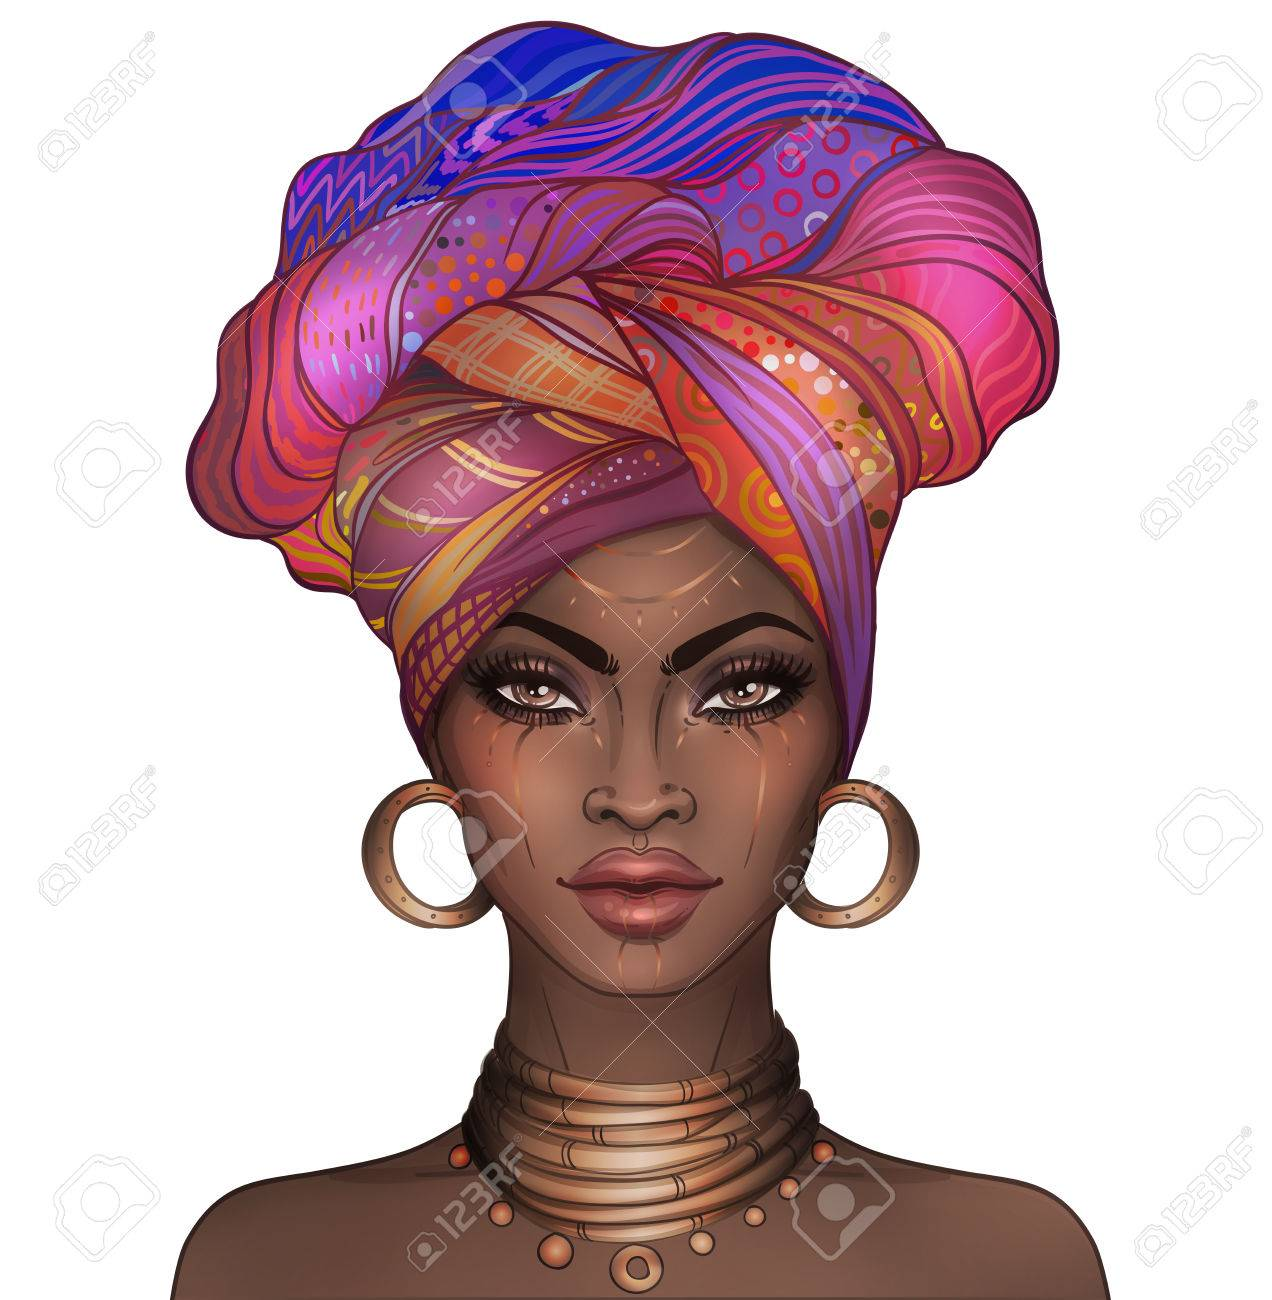 African American pretty girl. Raster Illustration of Black Woman with glossy lips and turban. Great for avatars. Illustration isolated on white. - 78308011